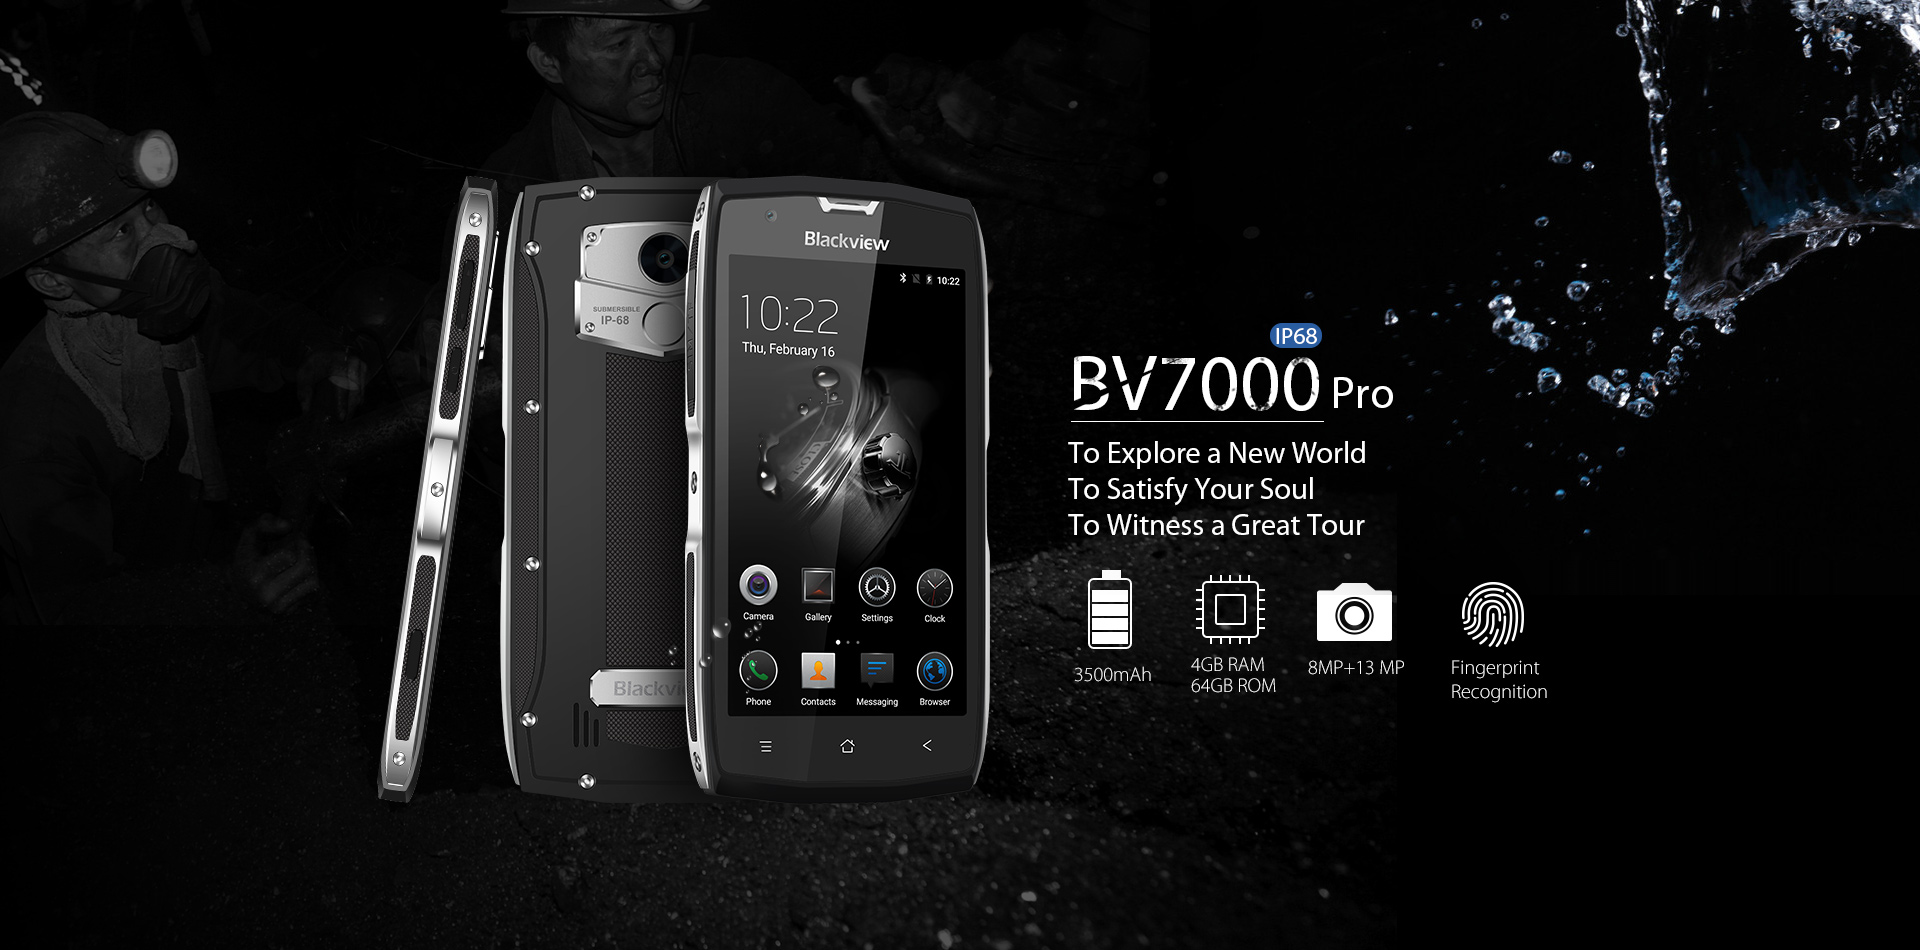 BV7000 Pro IP68 rugged smartphone